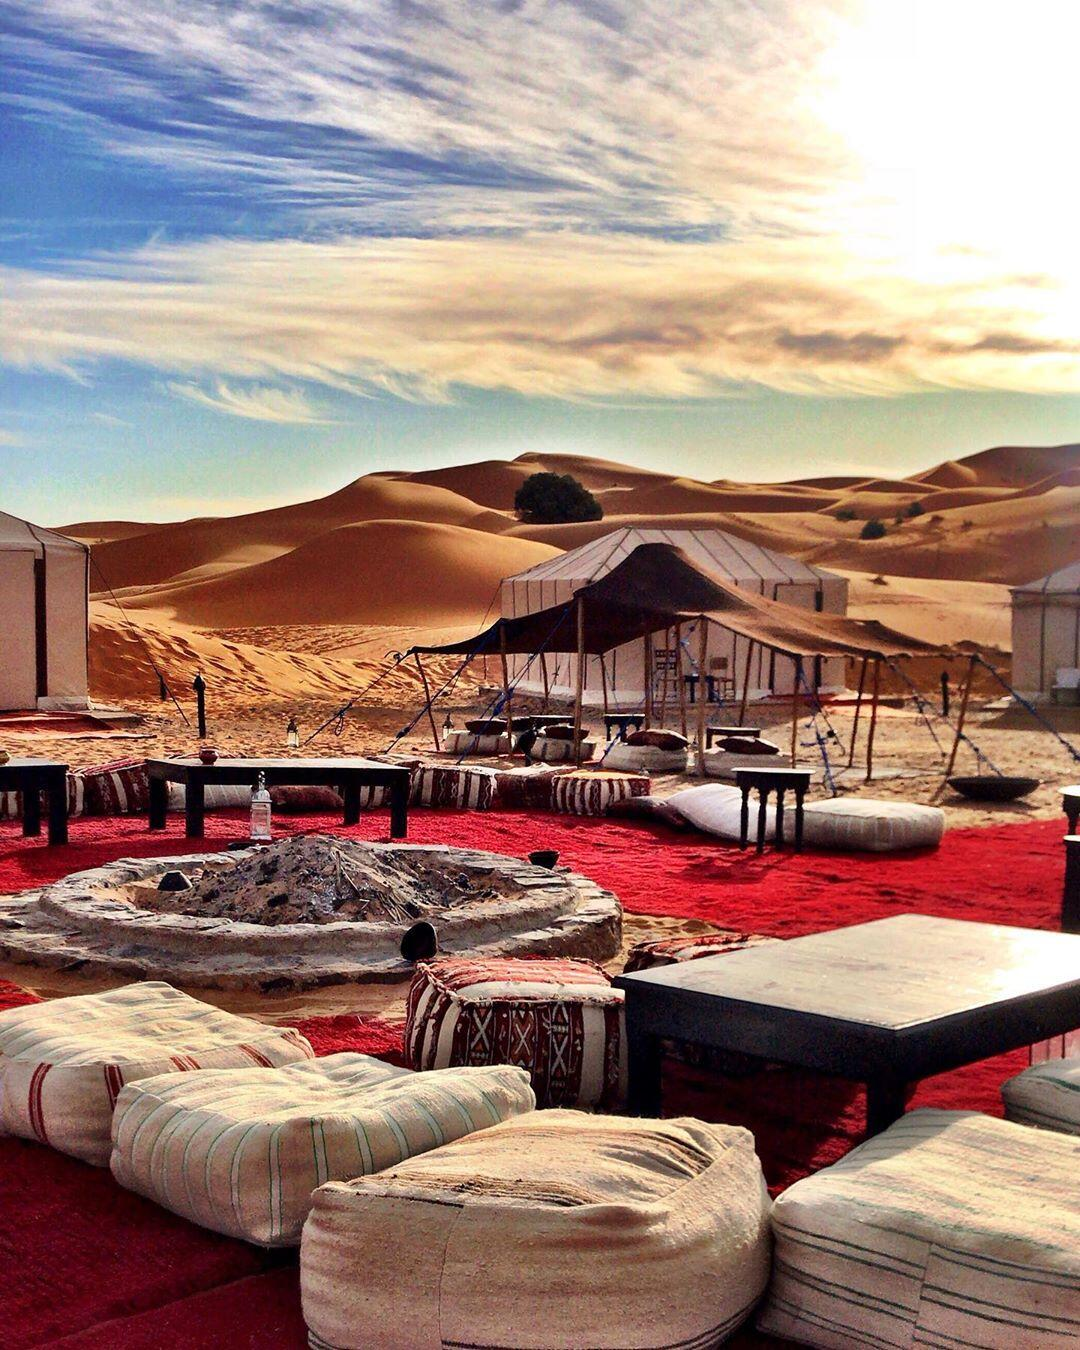 join our 8 days tour in Morocco to spend the night at berber tents